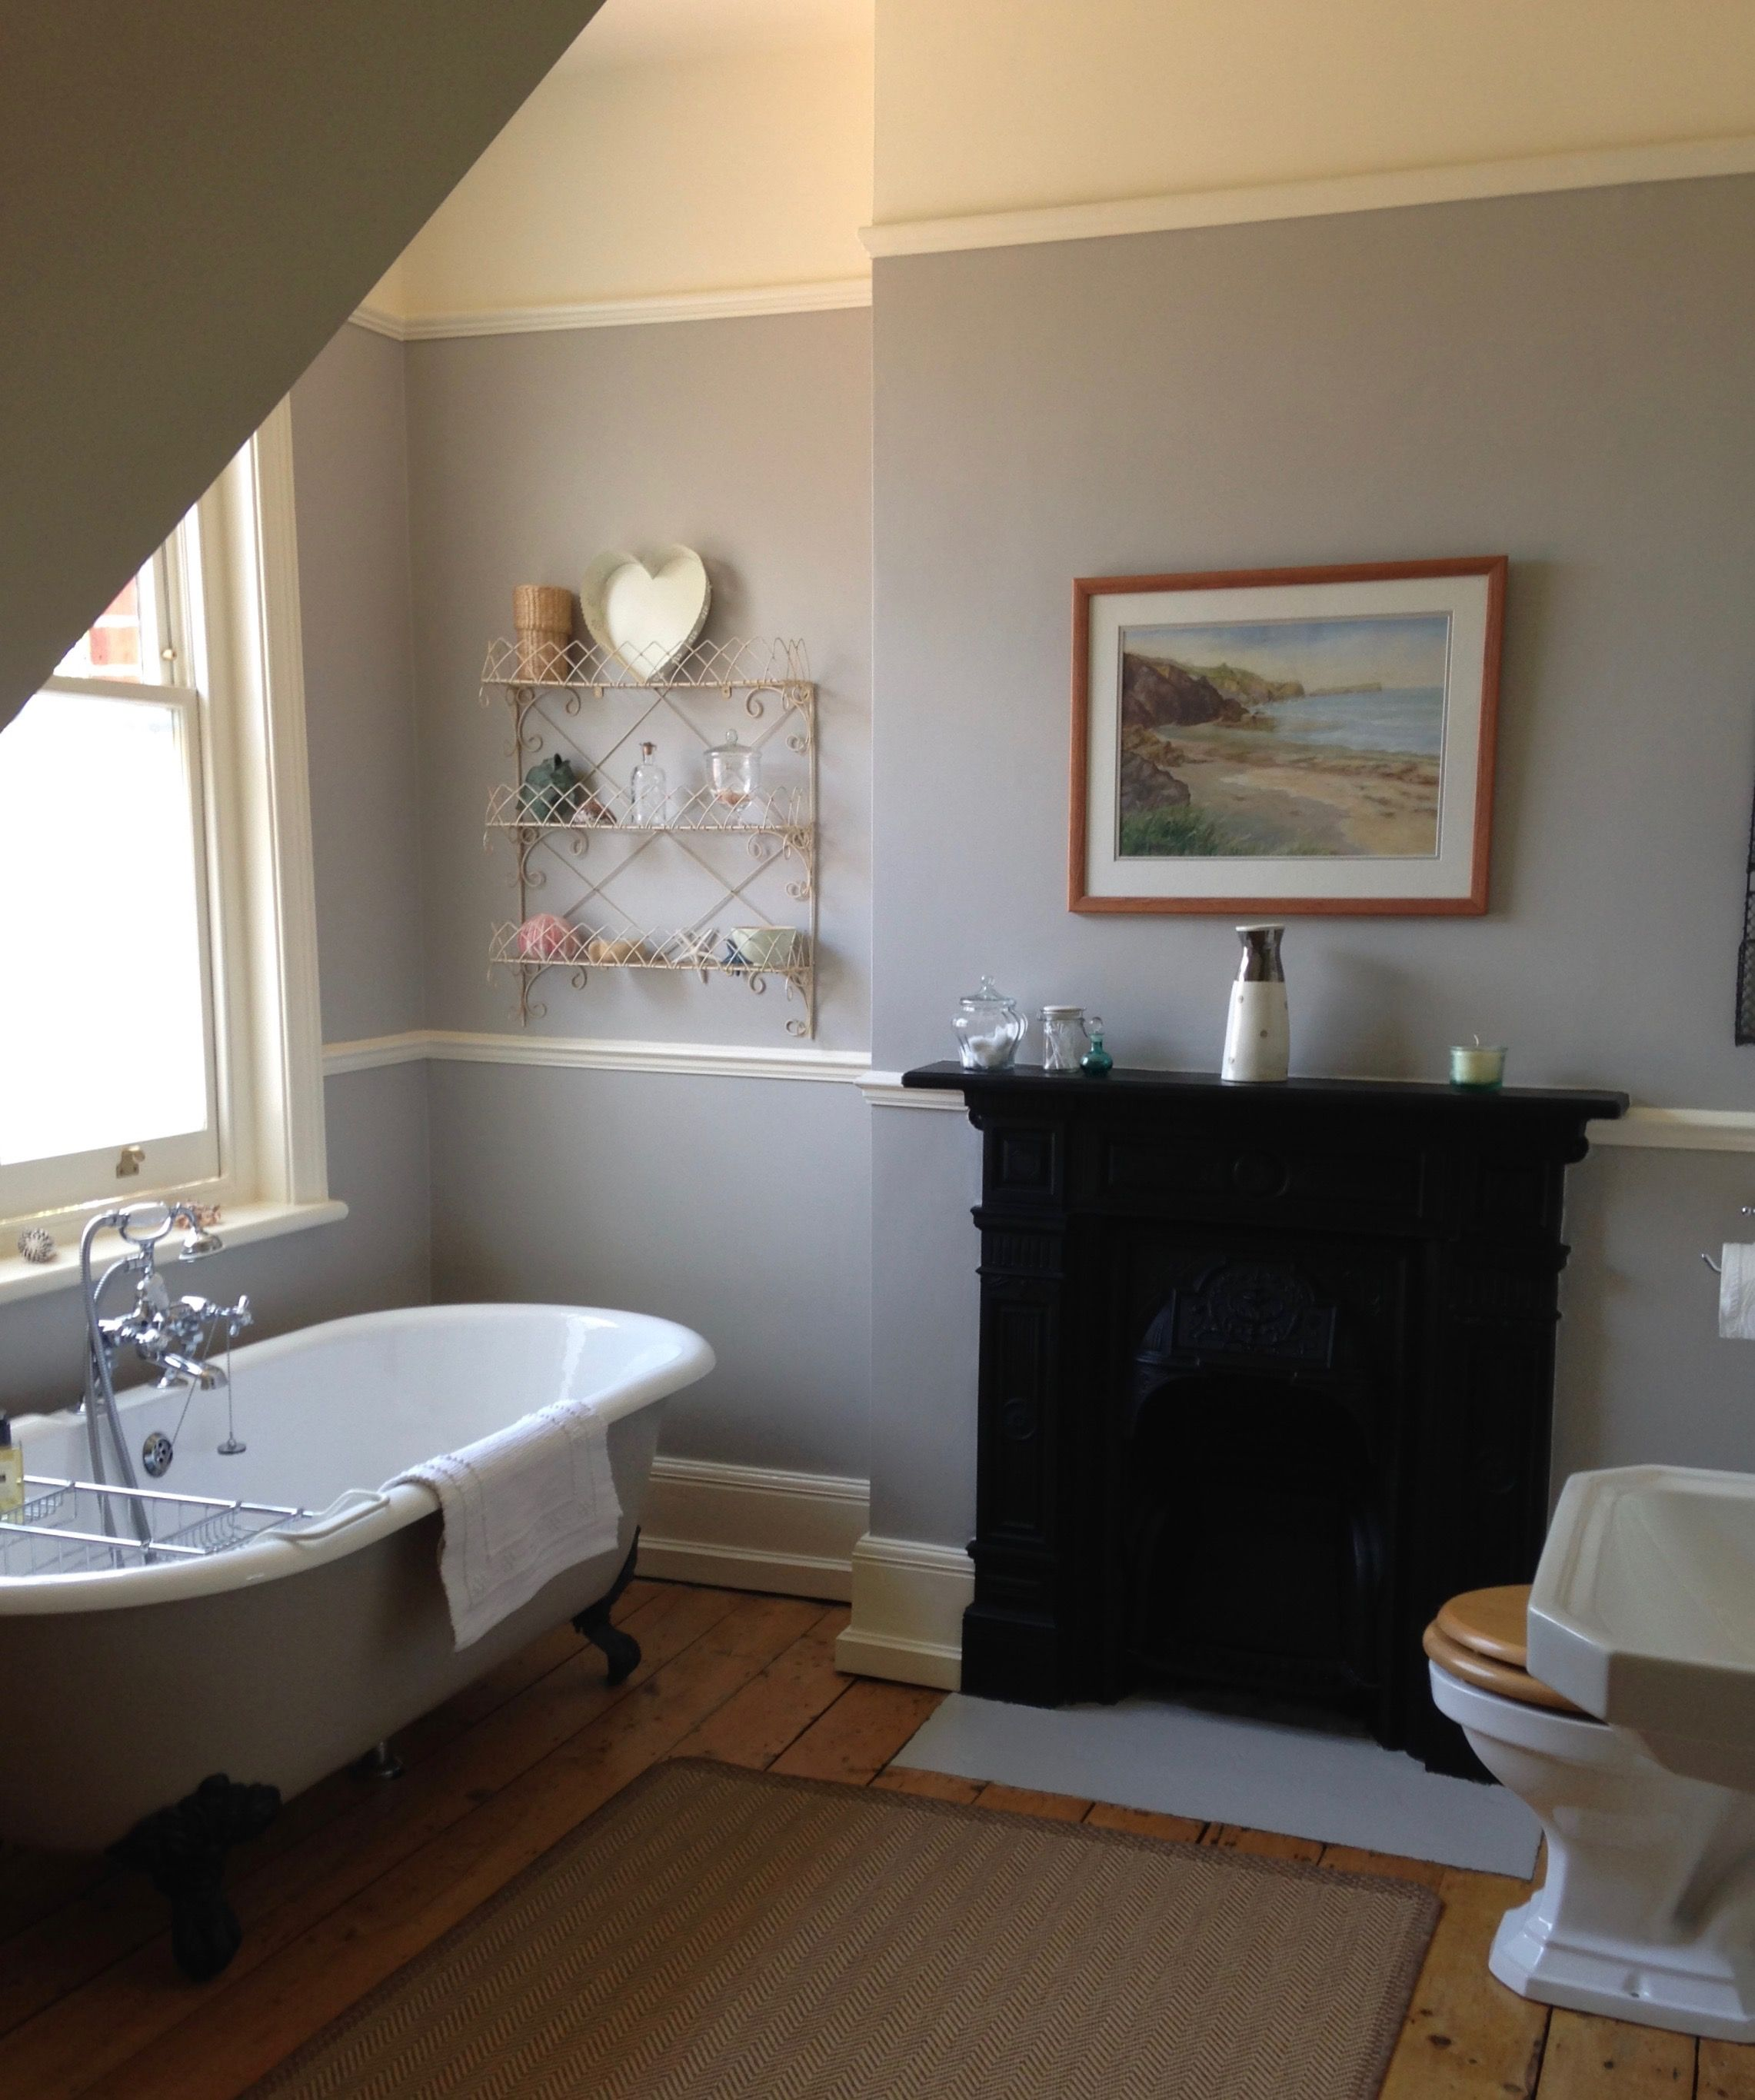 Best Farrow And Ball Purbeck Stone Bathroom Inspiration 400 x 300